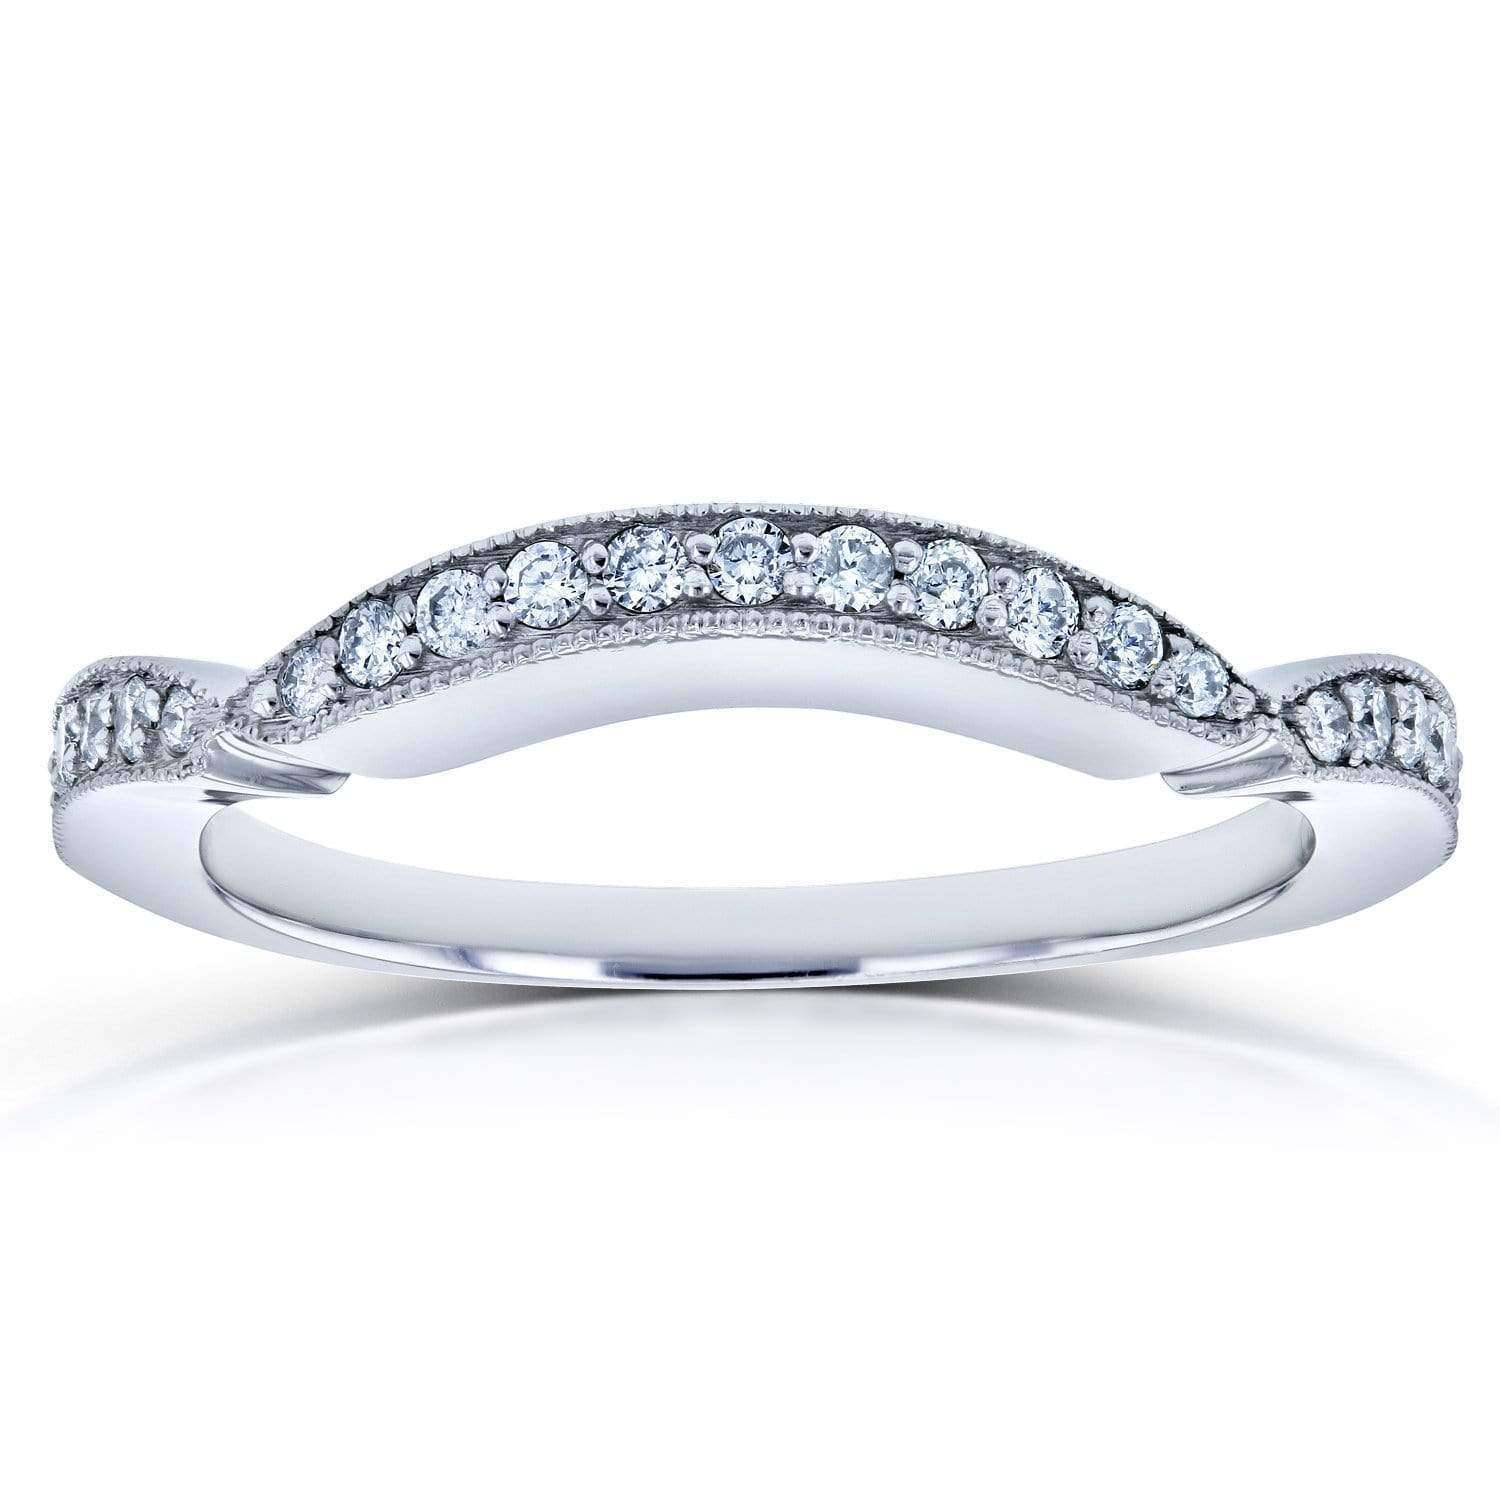 Compare Diamond Contour Wedding Band 1/5 Carat TDW in 14k White Gold (for 62198 series) - 7